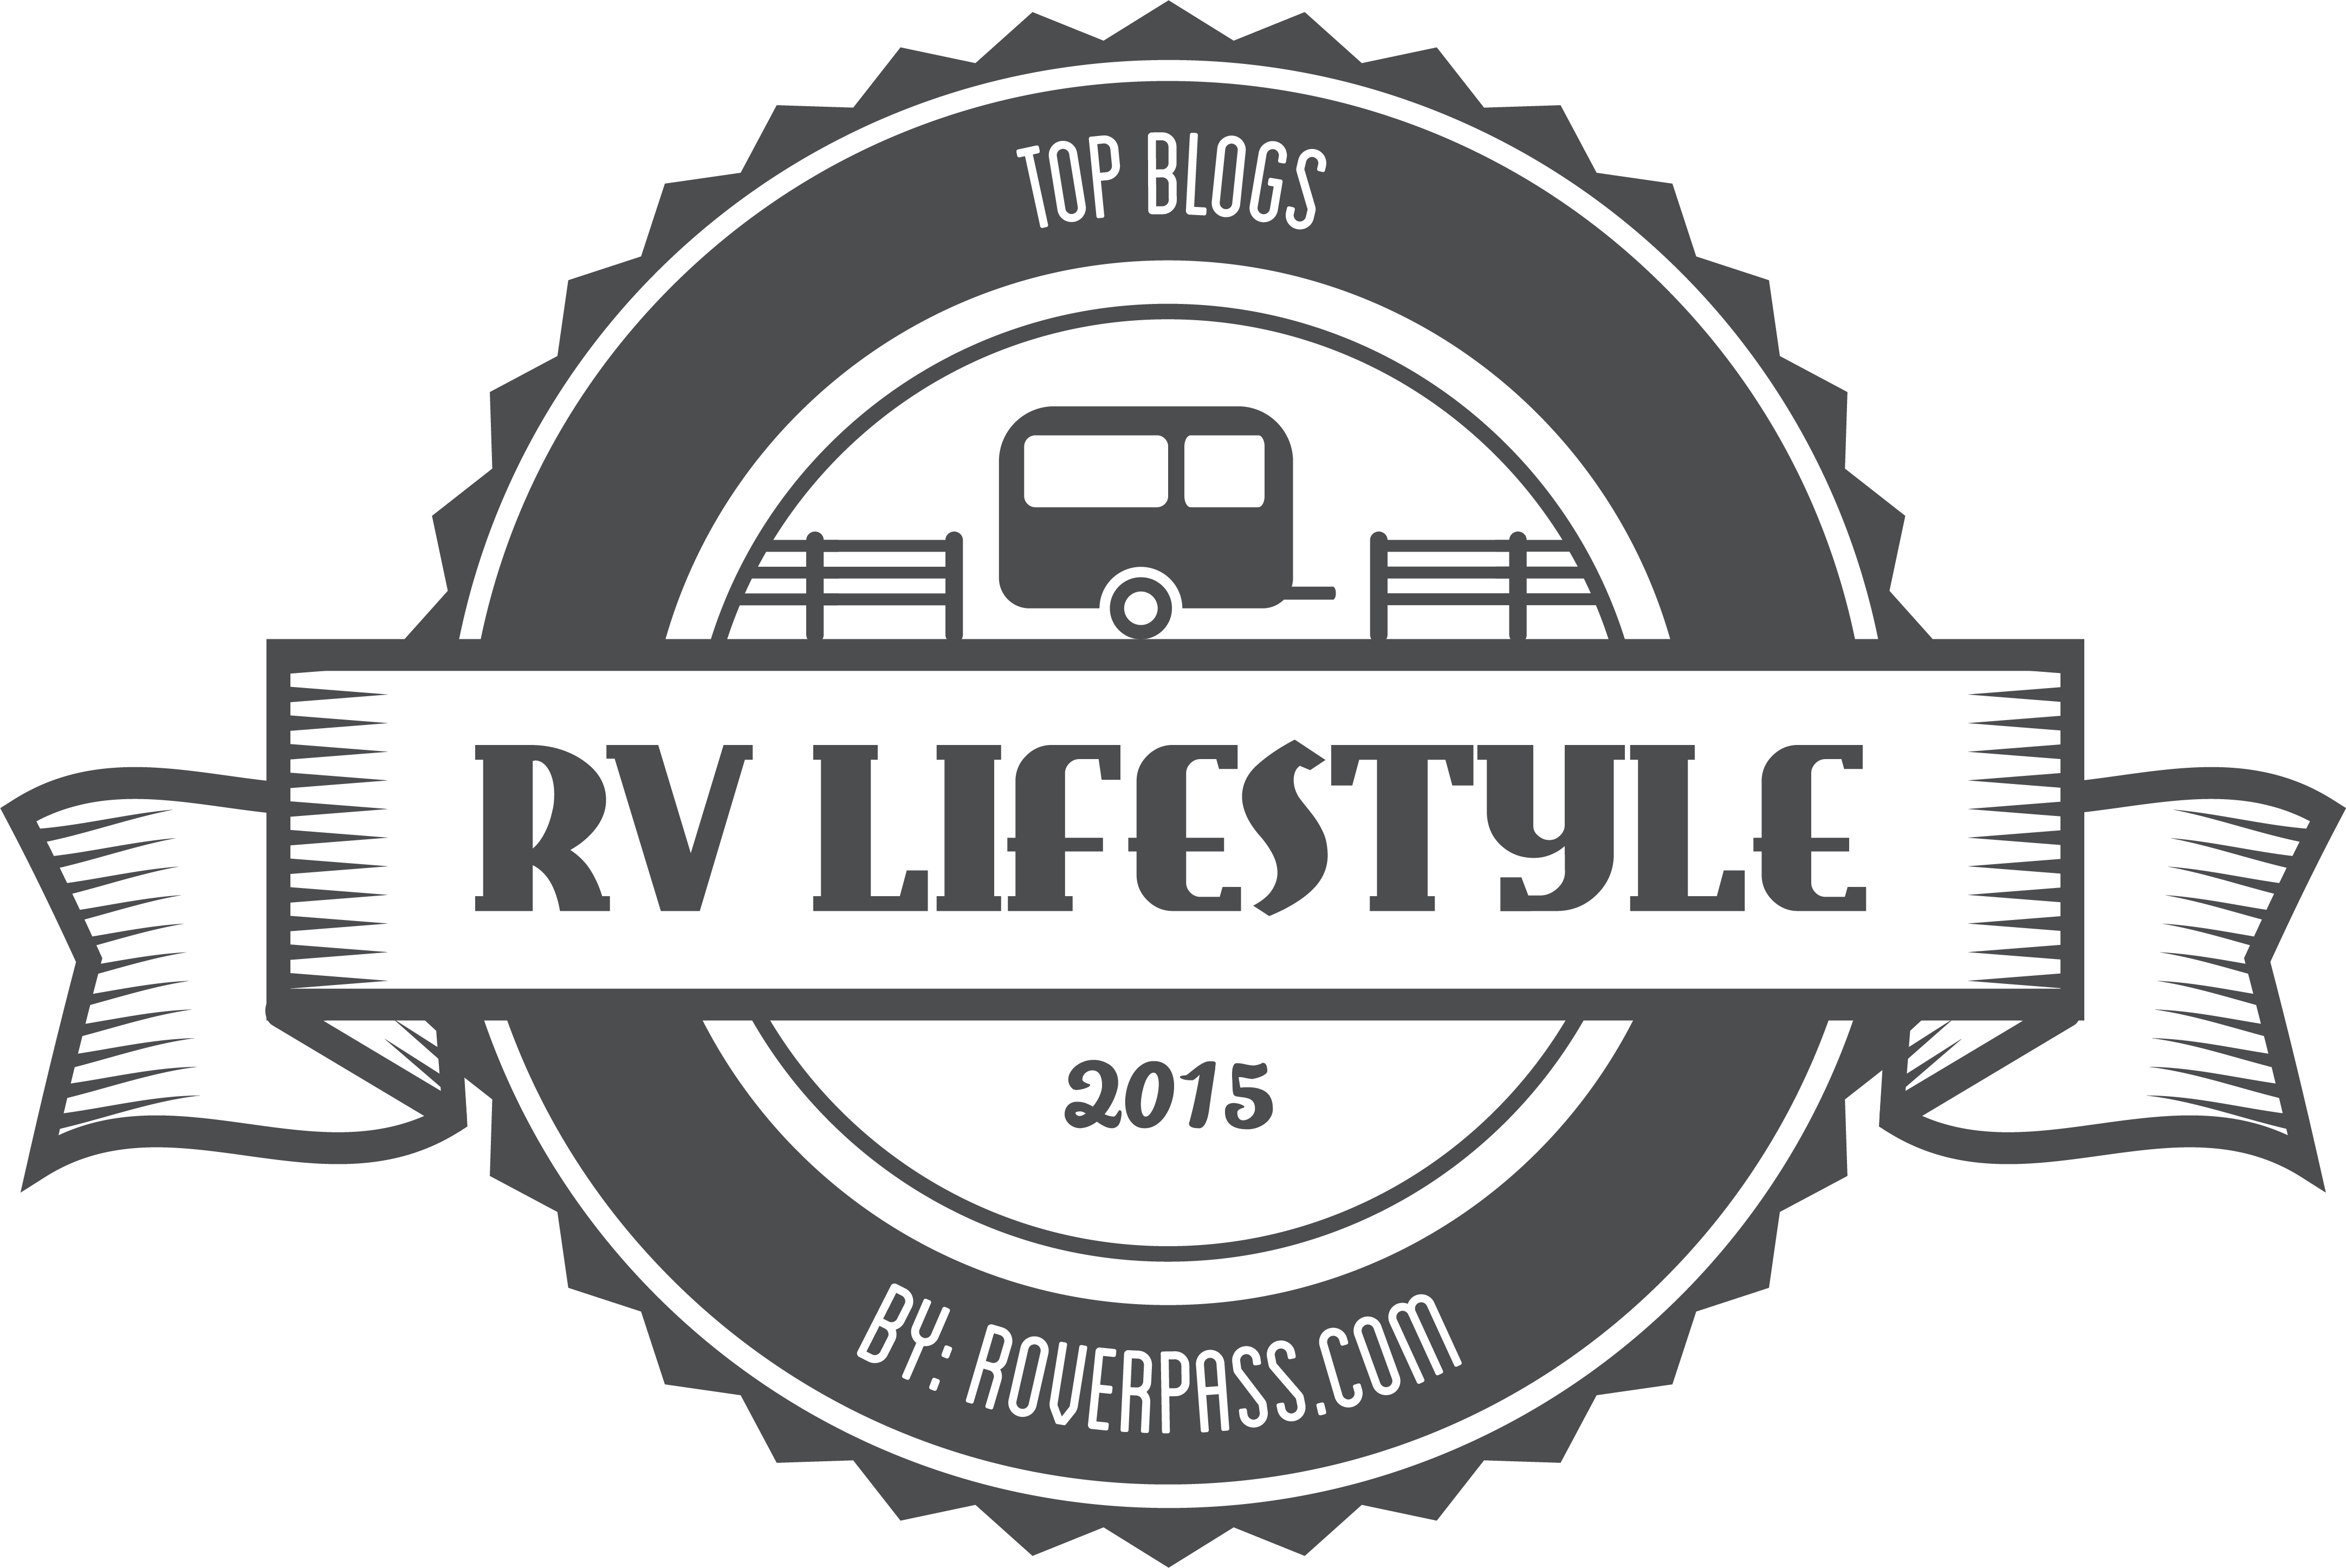 Huge List of Top RV LifeStyle Blogs in 2015